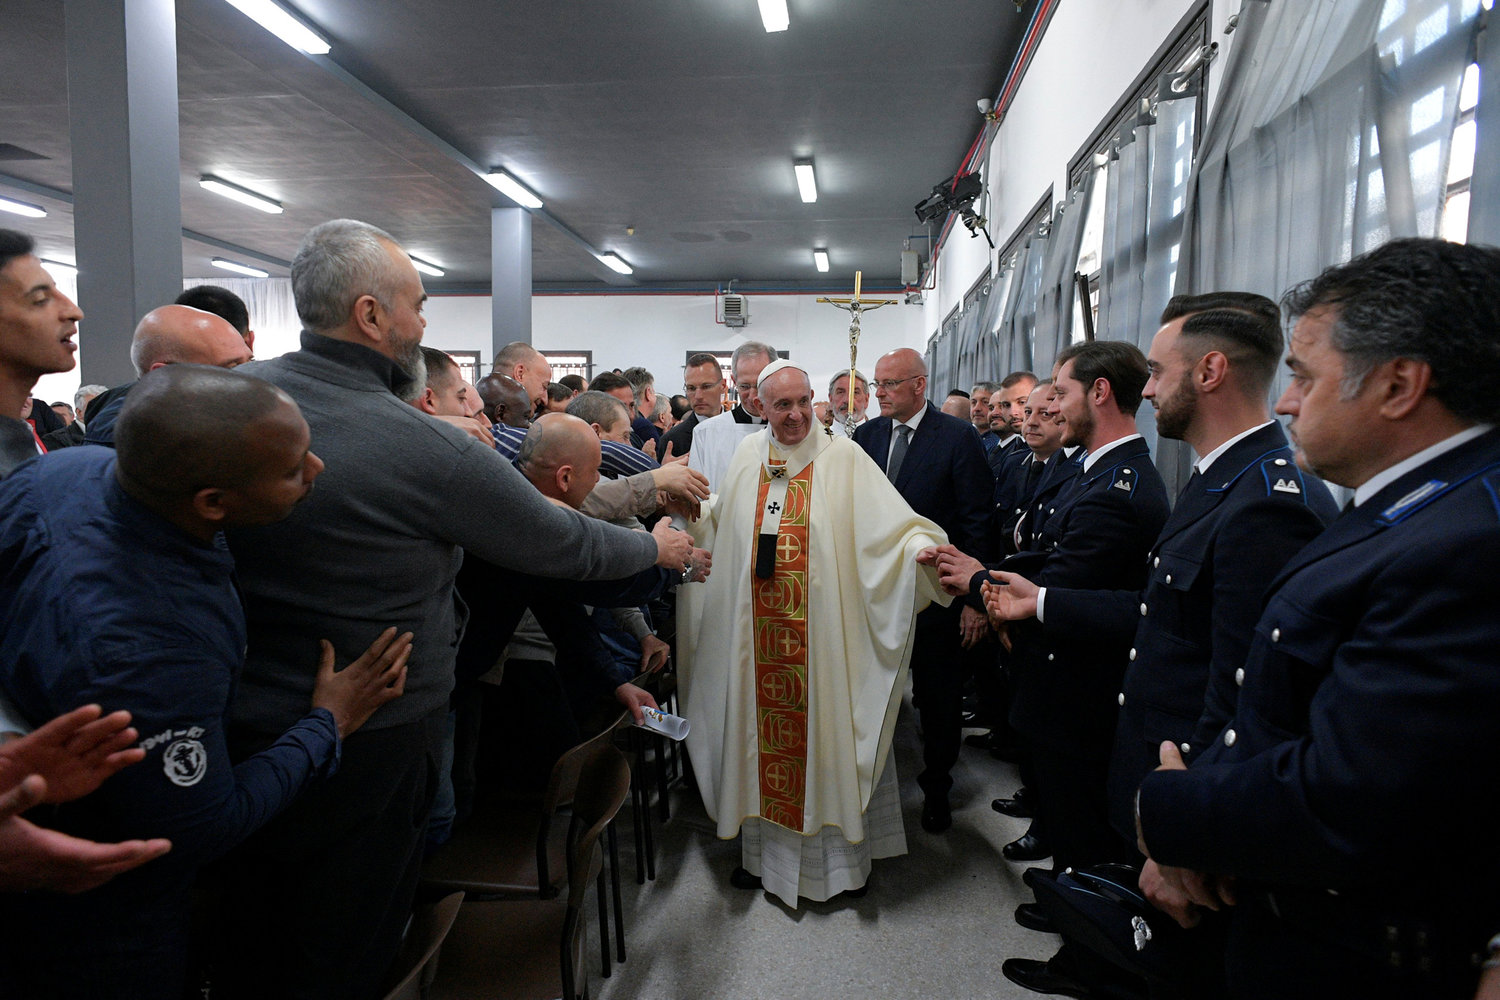 Pope Francis greets inmates and guards as he arrives to celebrate the Mass of Lord's Supper April 18, 2019, at Velletri Correctional Facility, 36 miles south of Rome.